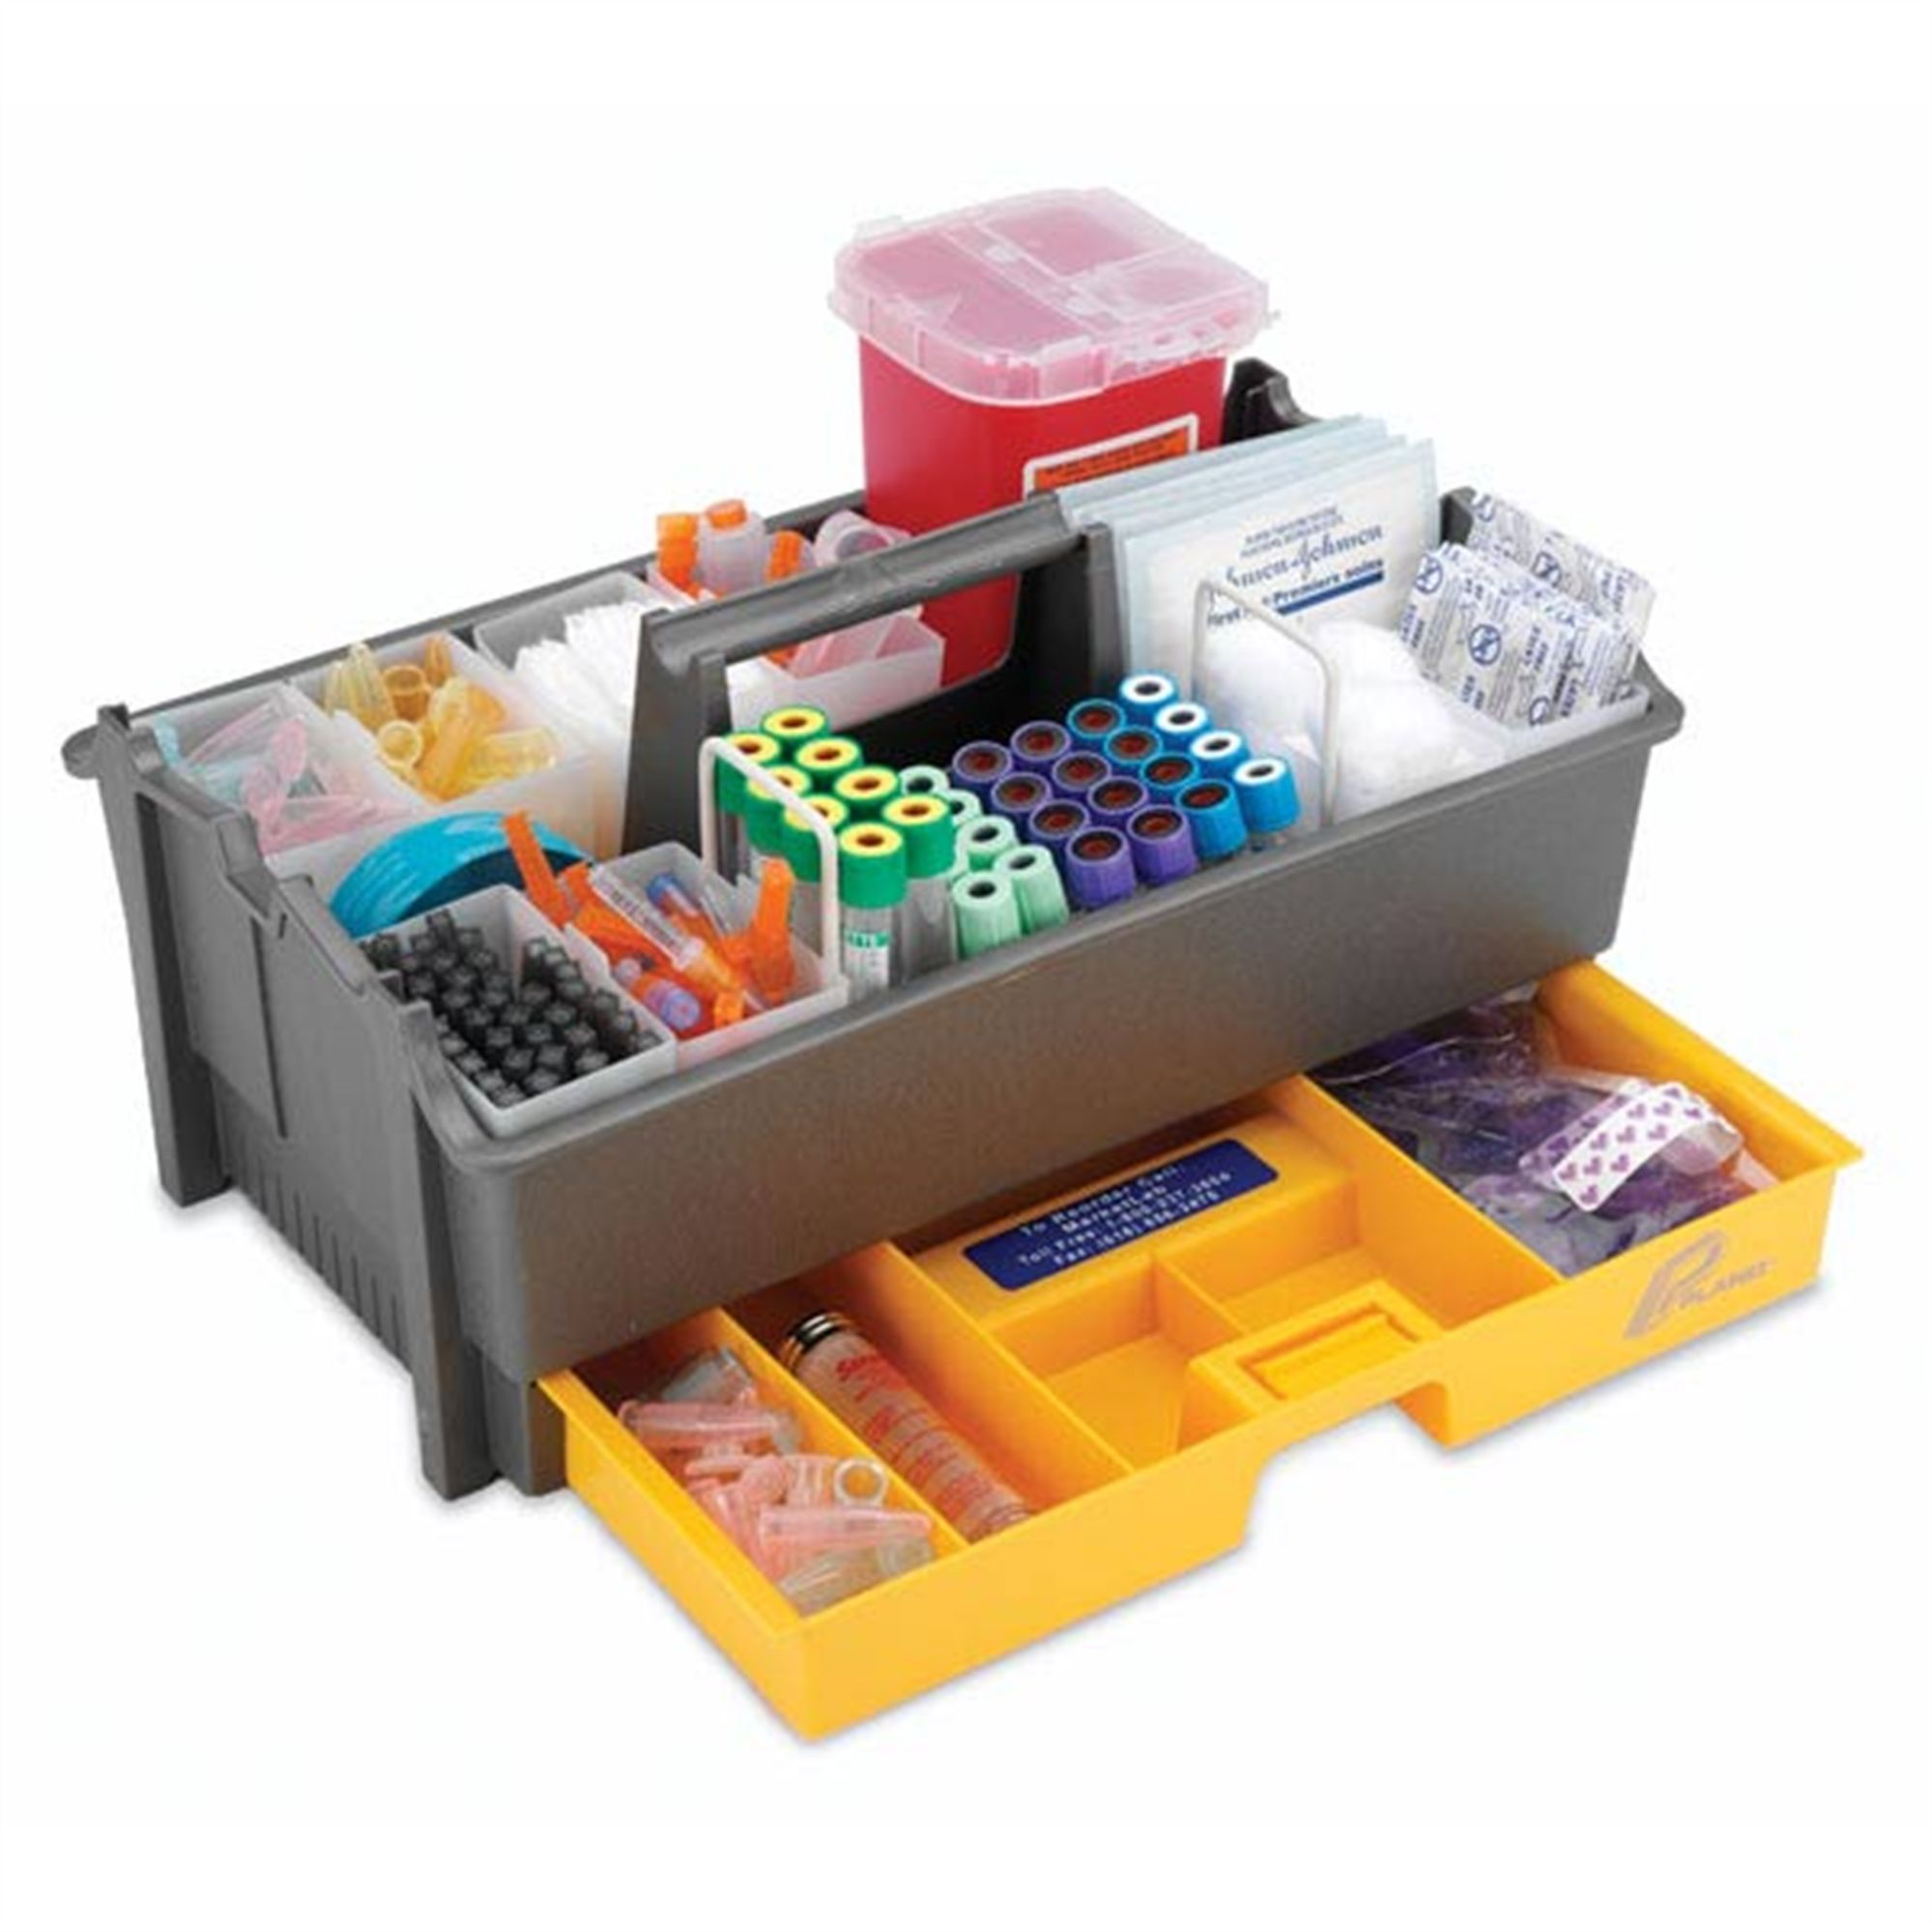 Specimen collection tray to put the equipment such as needles in phlebotomy tray is used to put and carry the equipment around in a safe place xflitez Choice Image